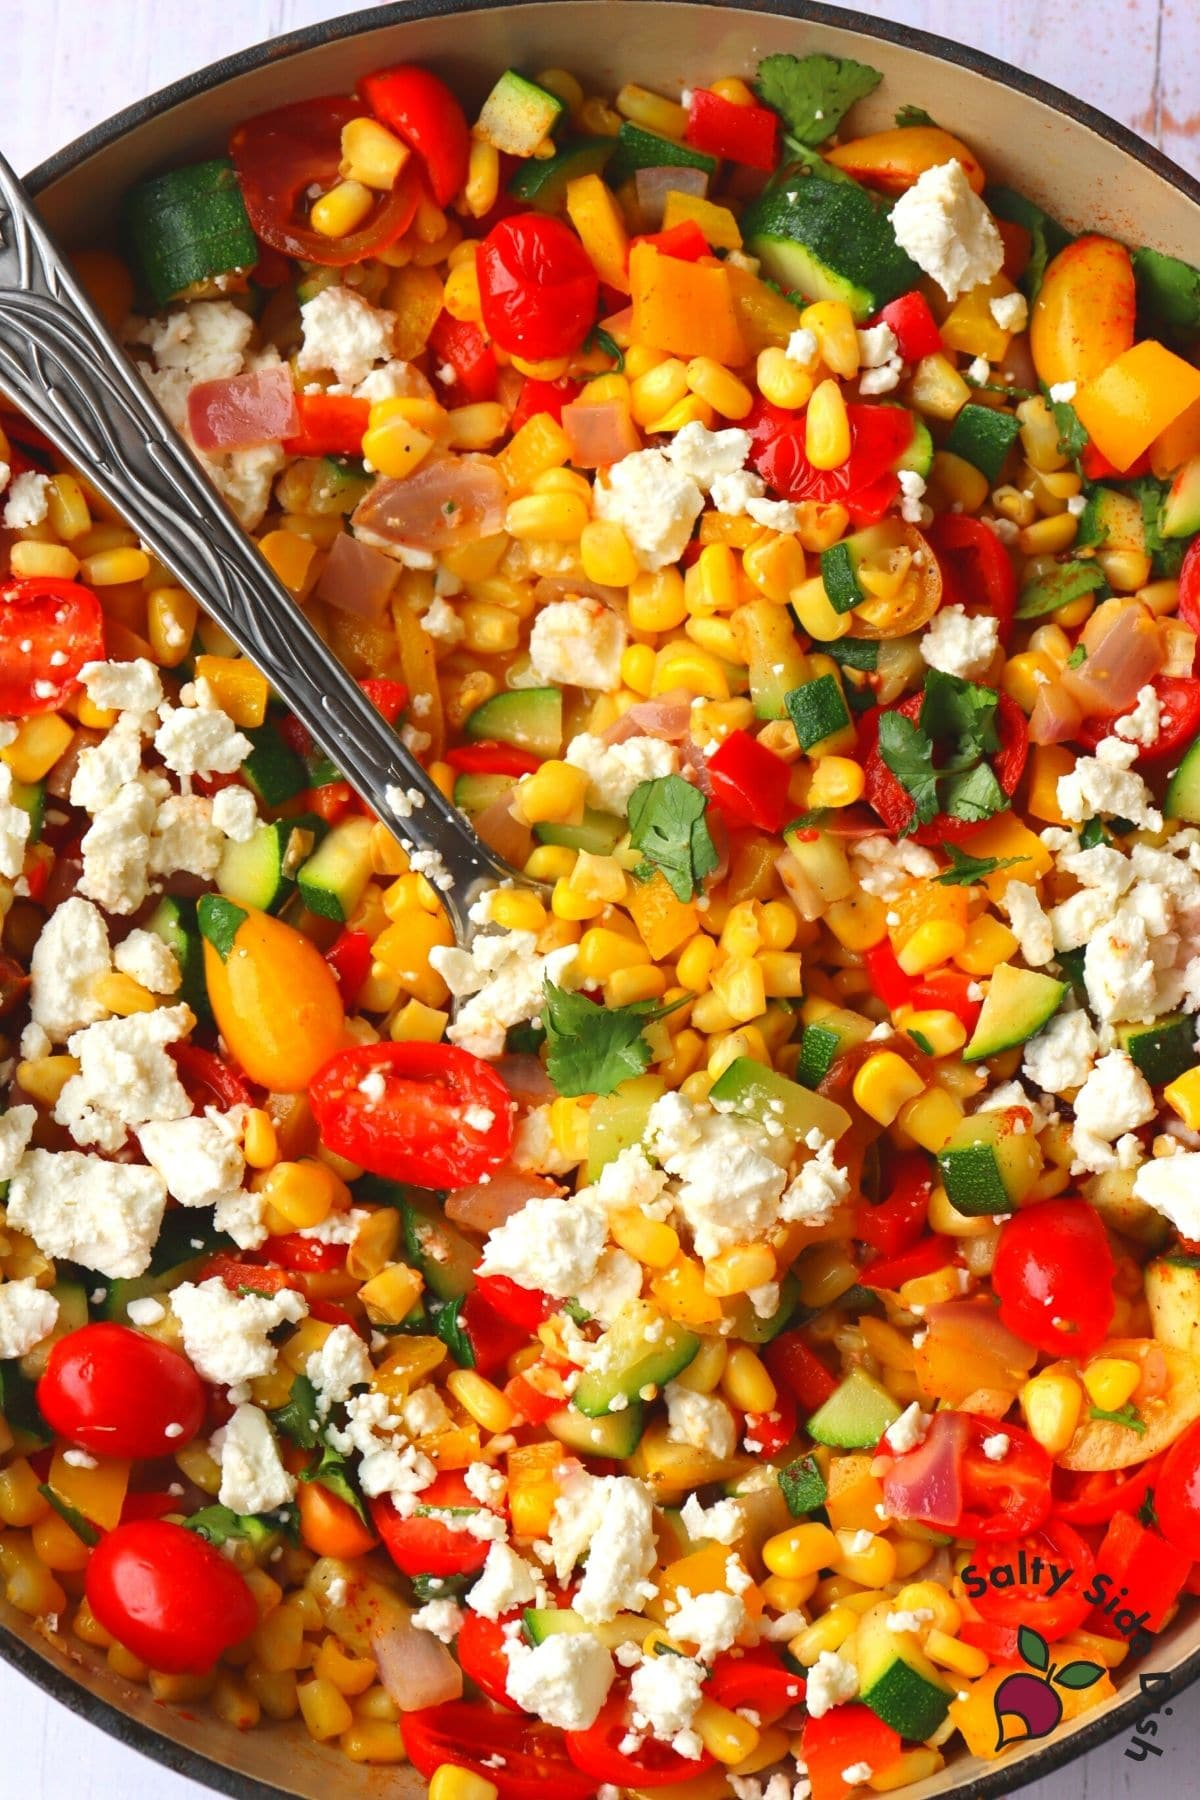 corn succotash in a skillet with a spoon